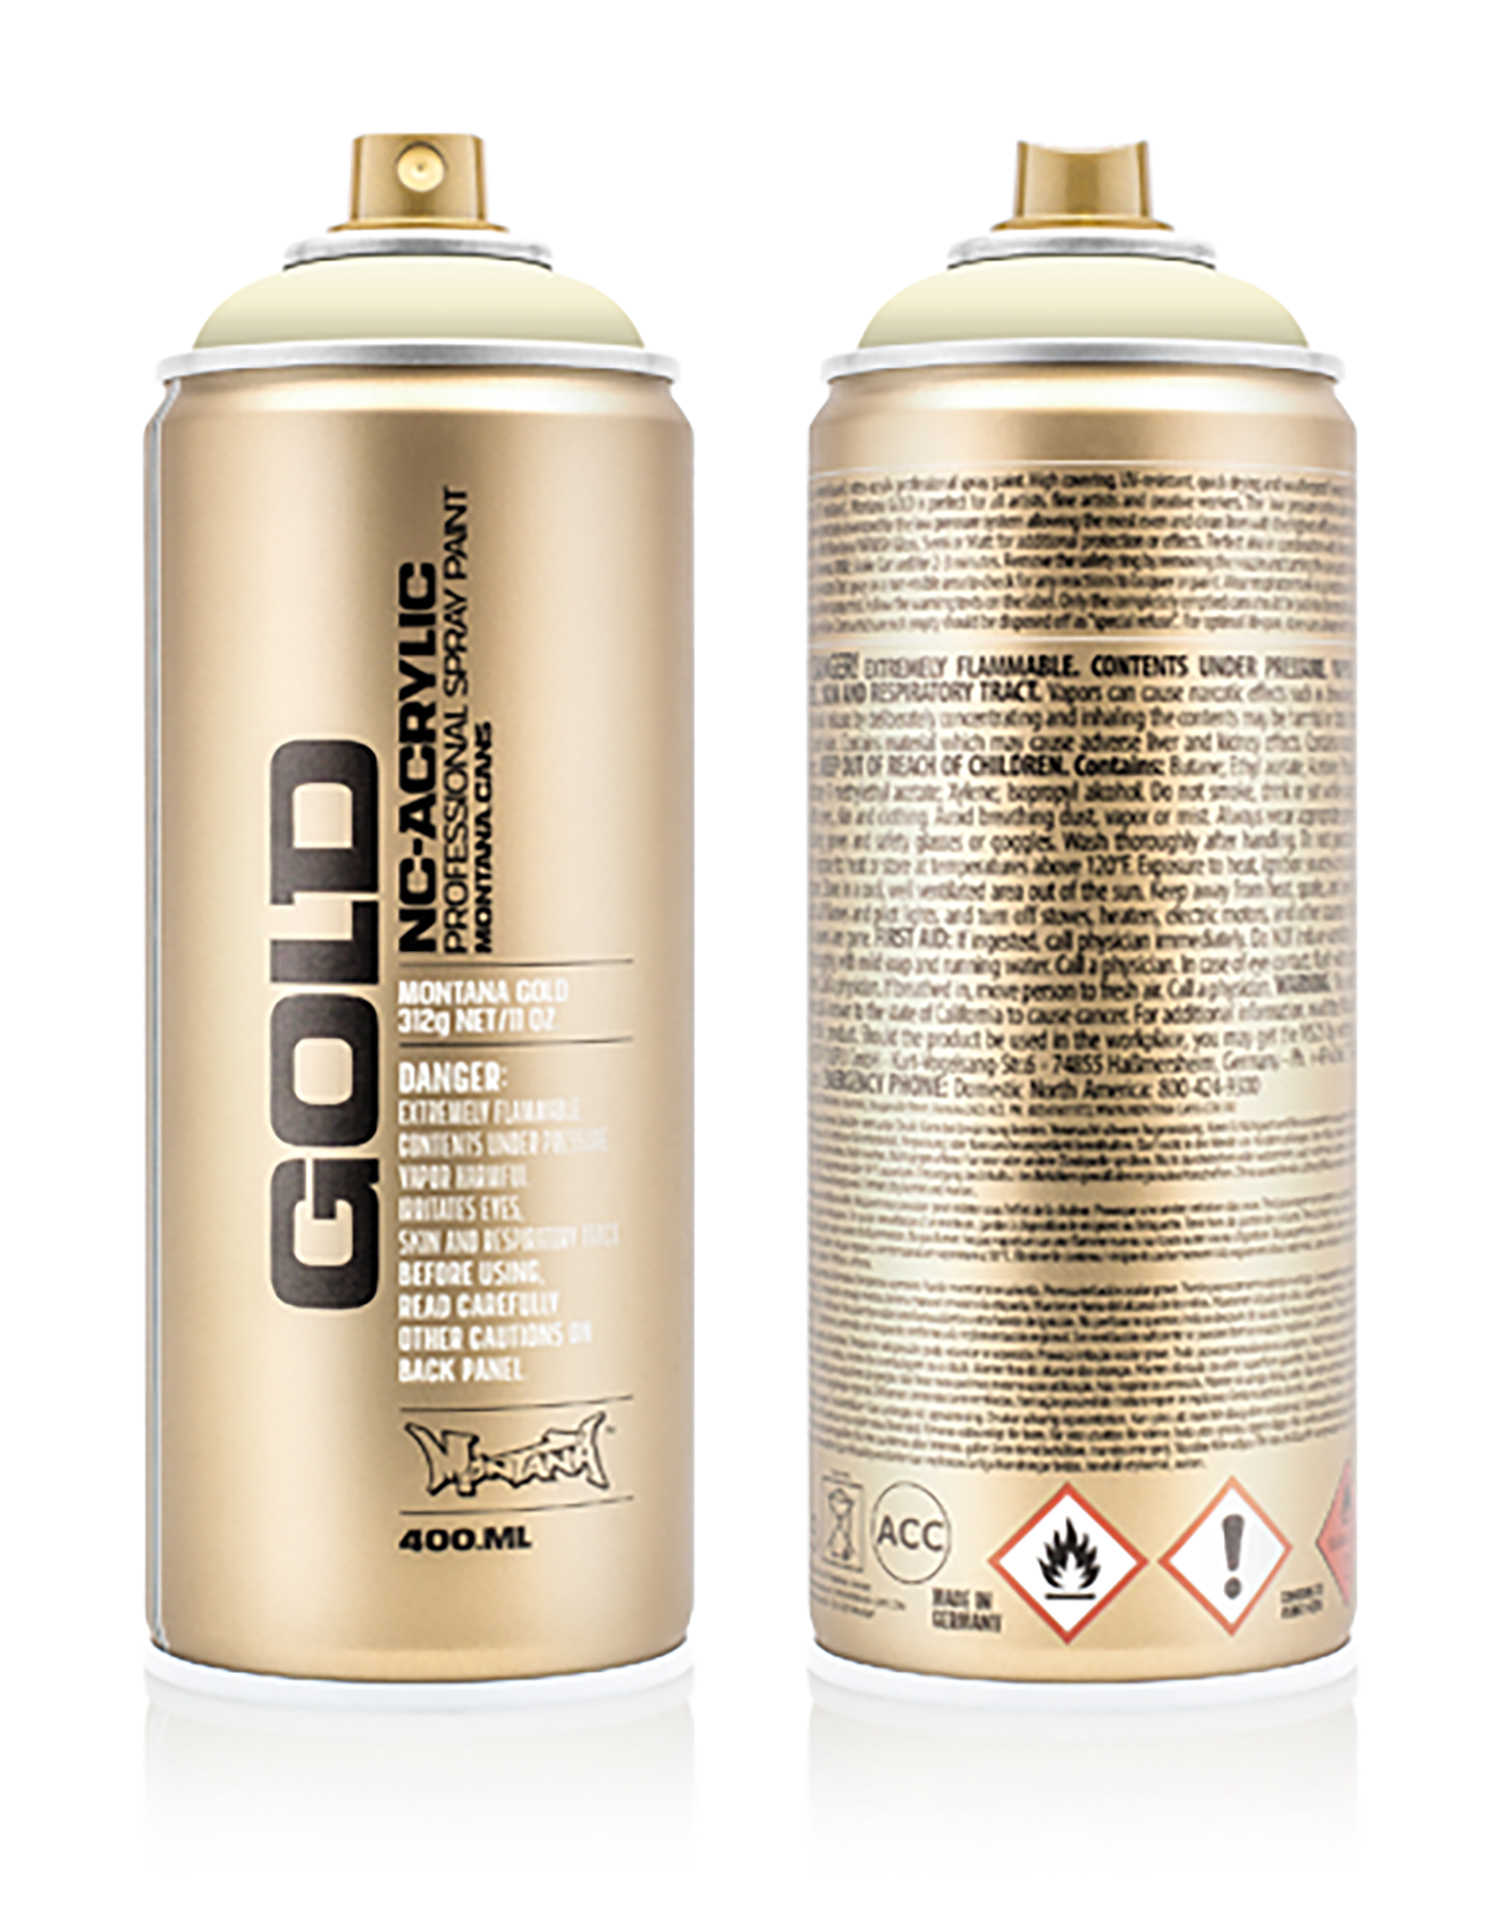 MONTANA-GOLD-SPRAY-400ML-G-8000